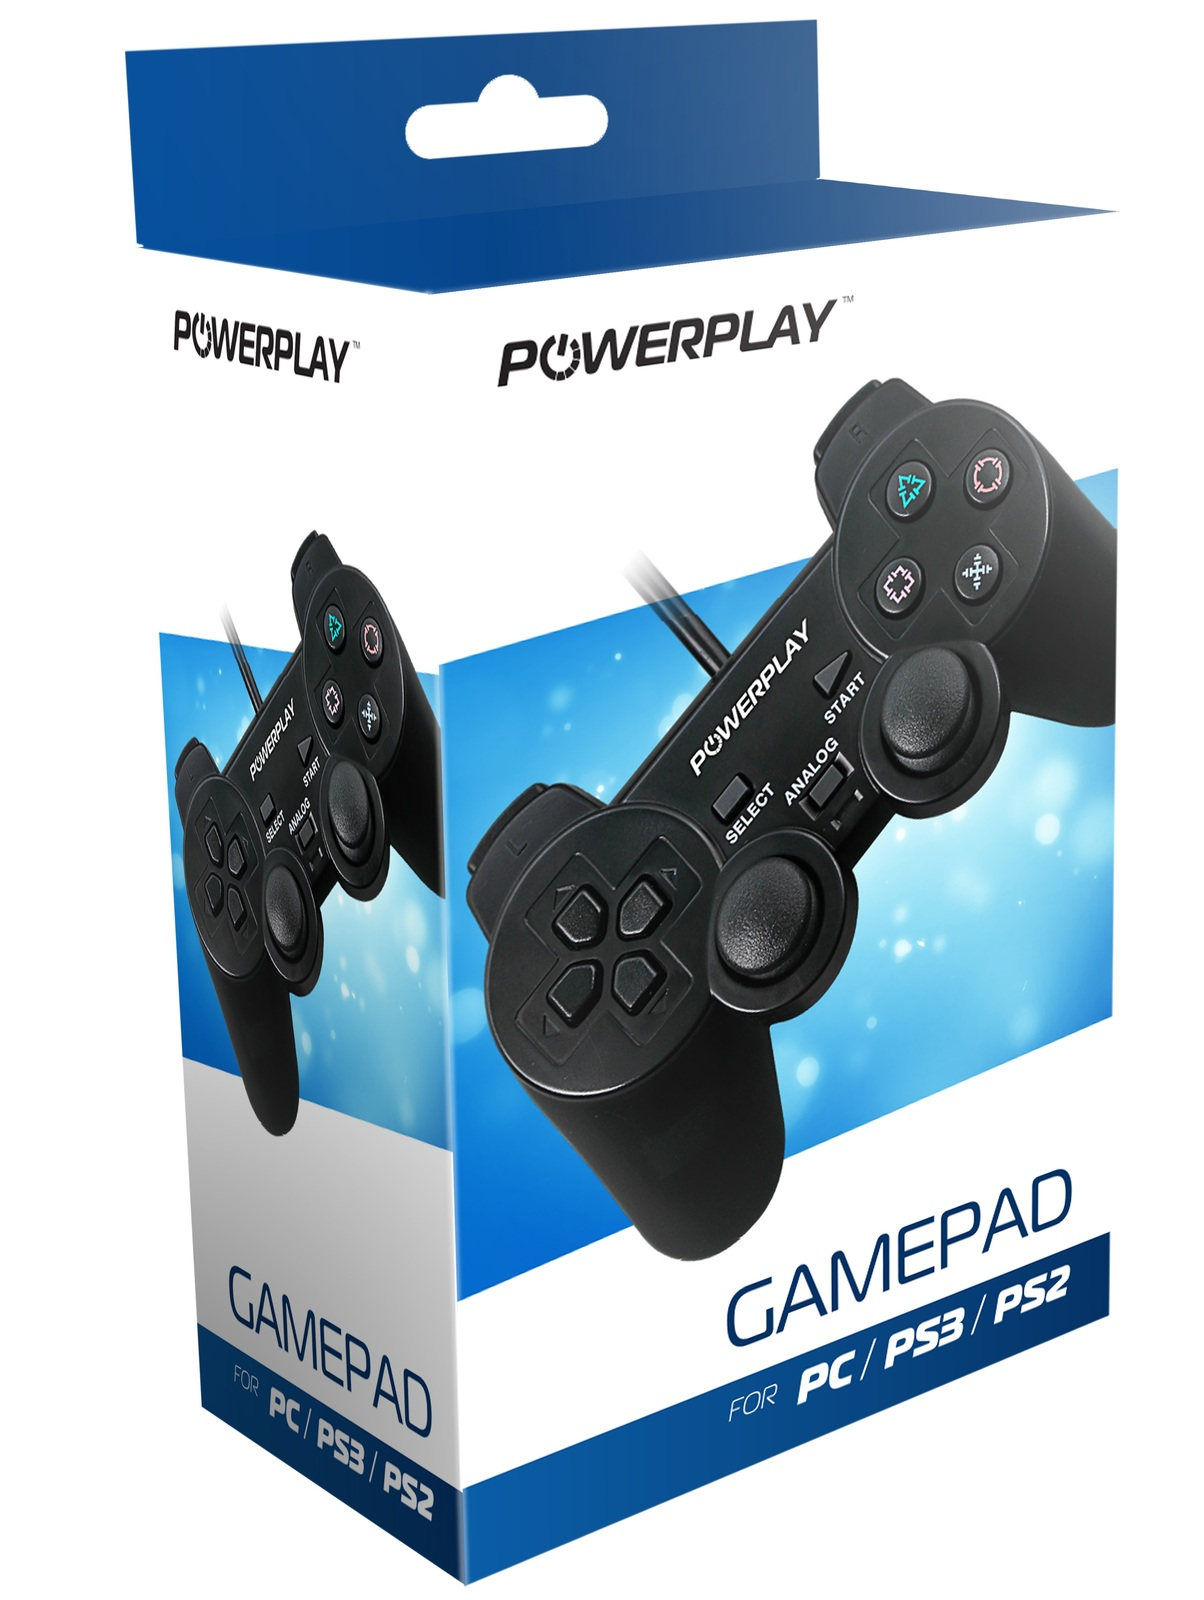 PowerPlay Gamepad (PC, PS2 & PS3) for PC image